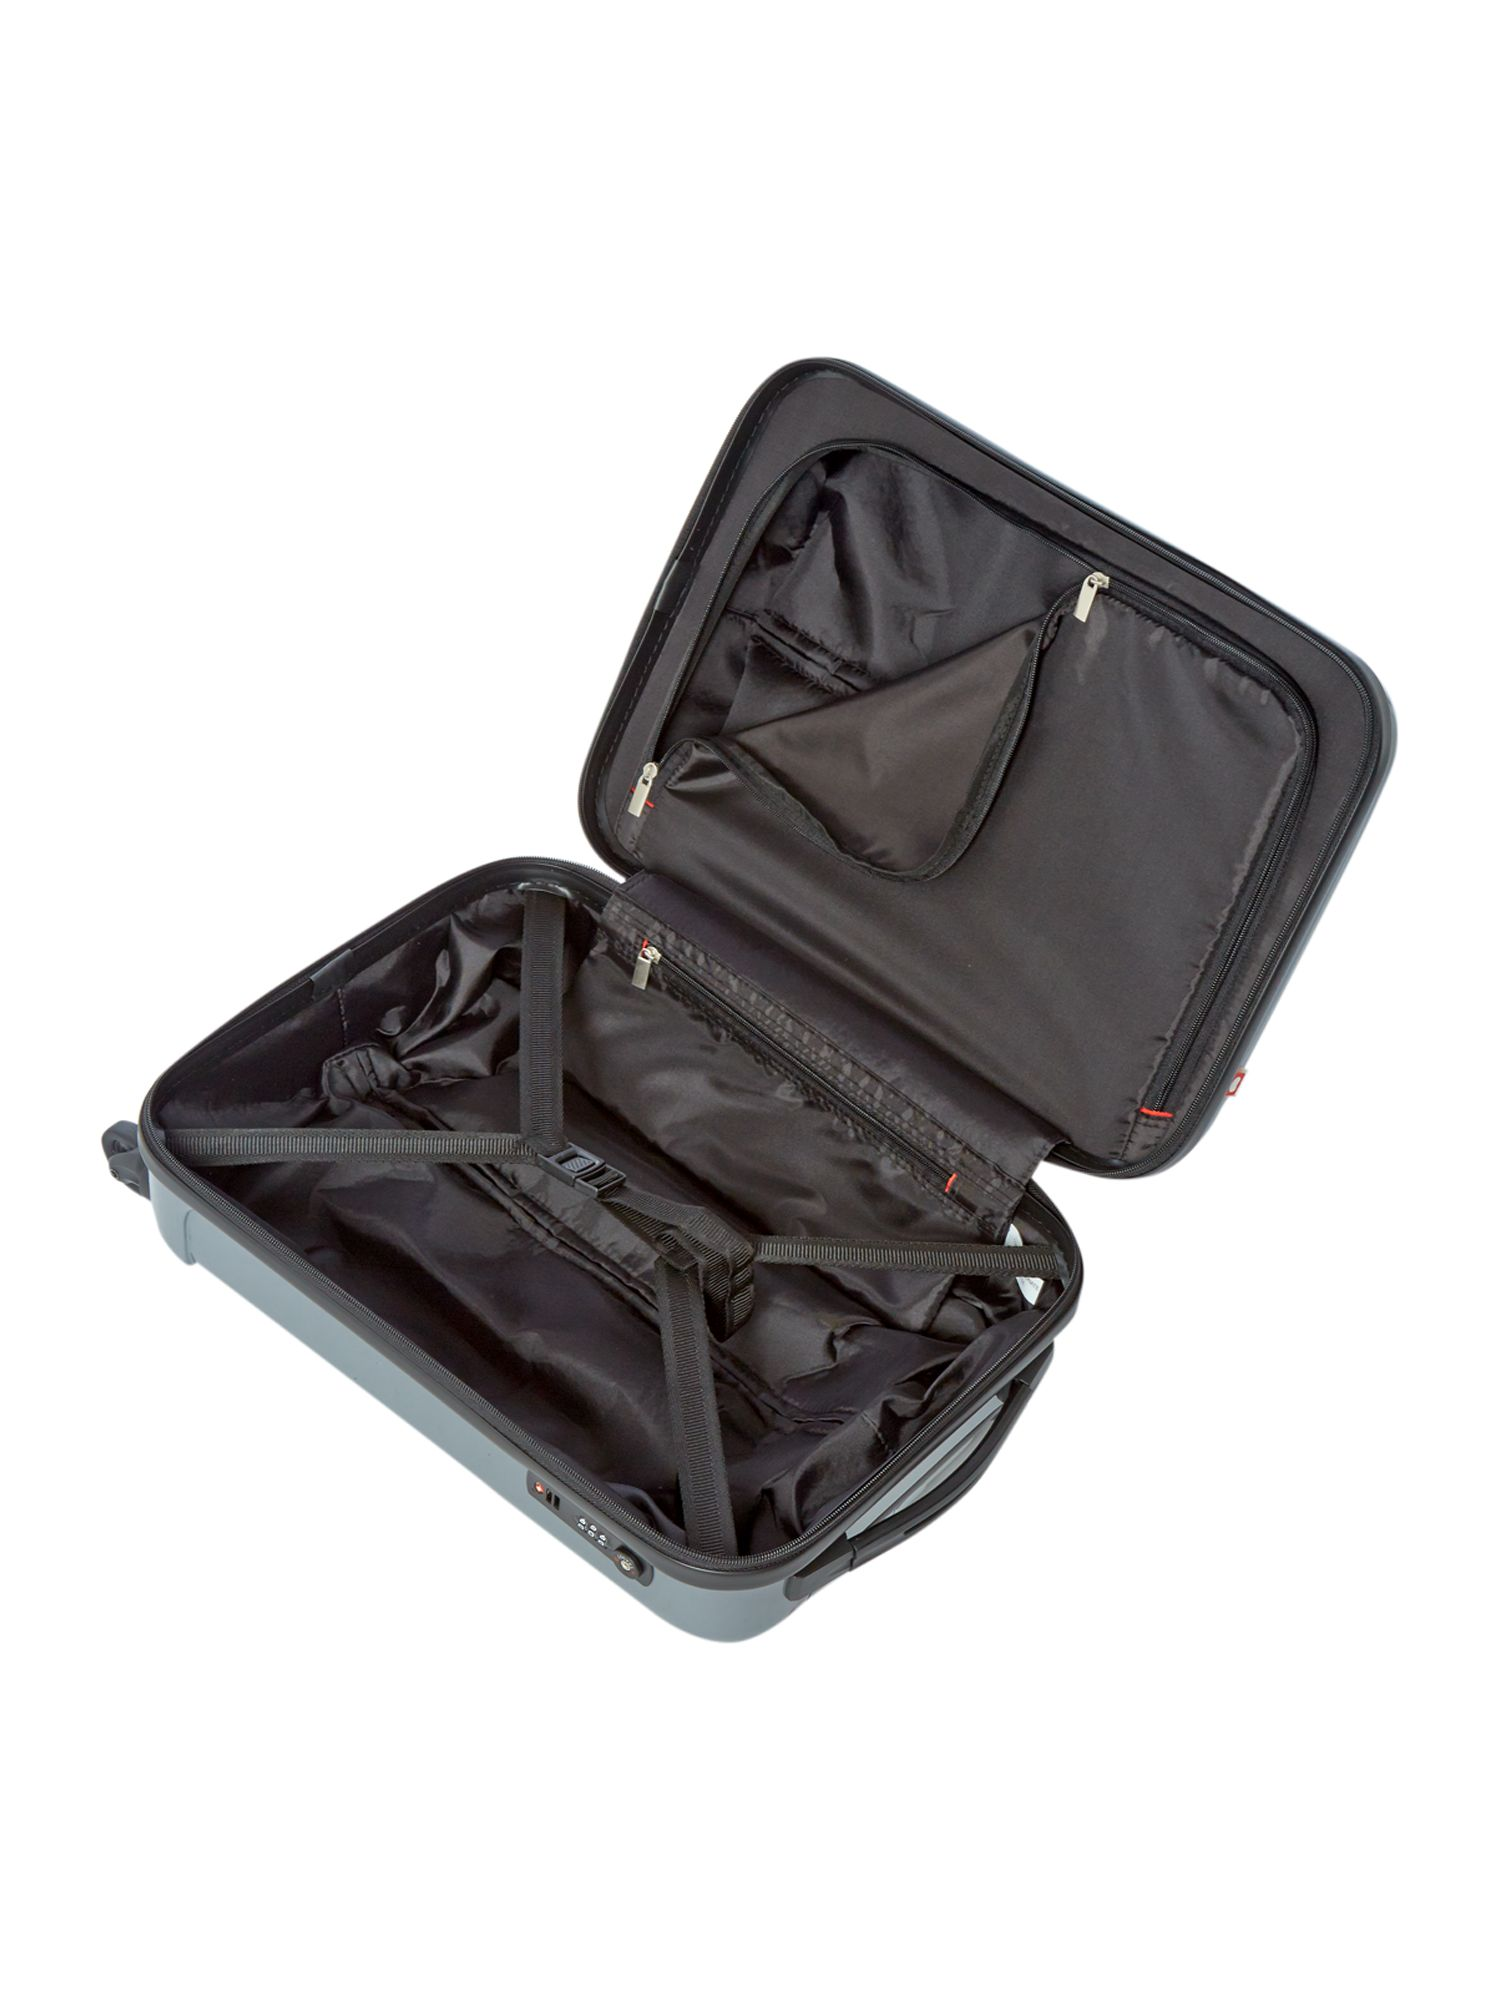 Axial cabin 4 wheel silver suitcase